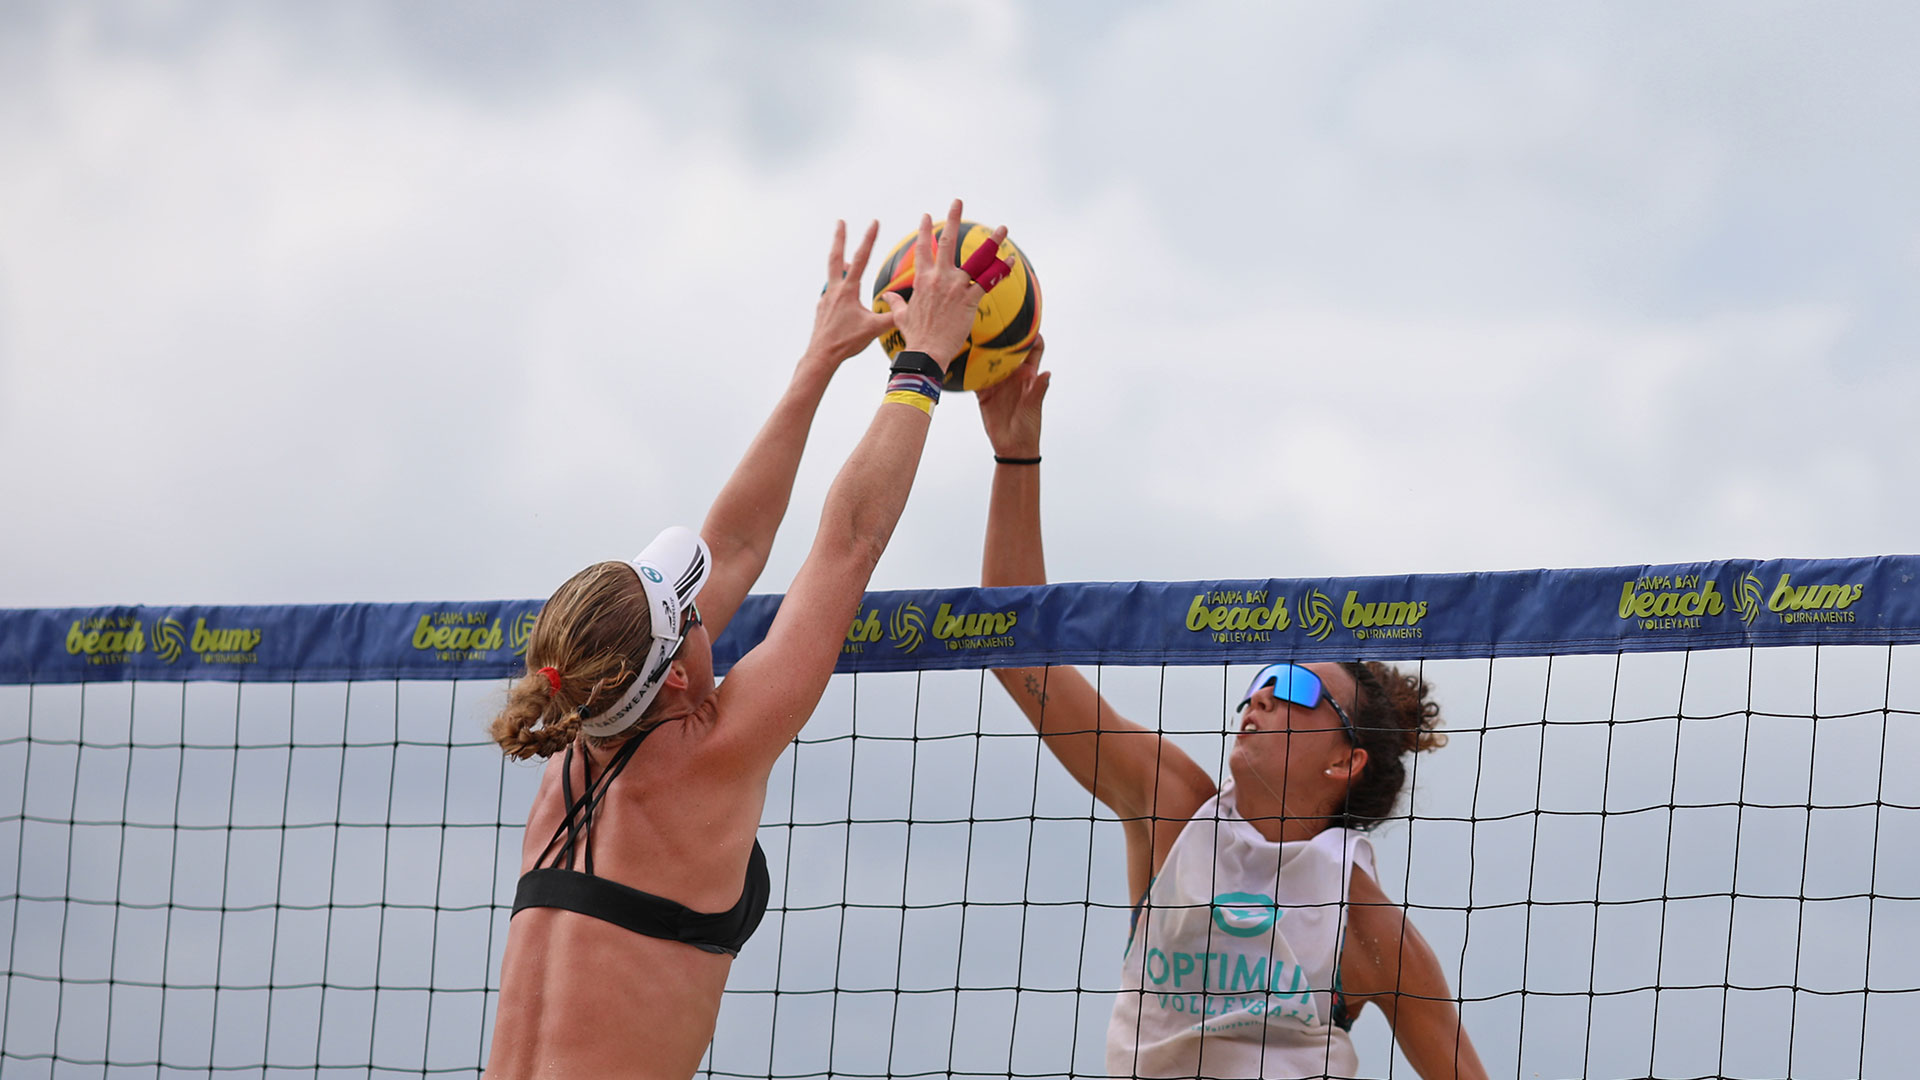 Professional & Adult Beach Volleyball Training - Optimum Beach, Florida